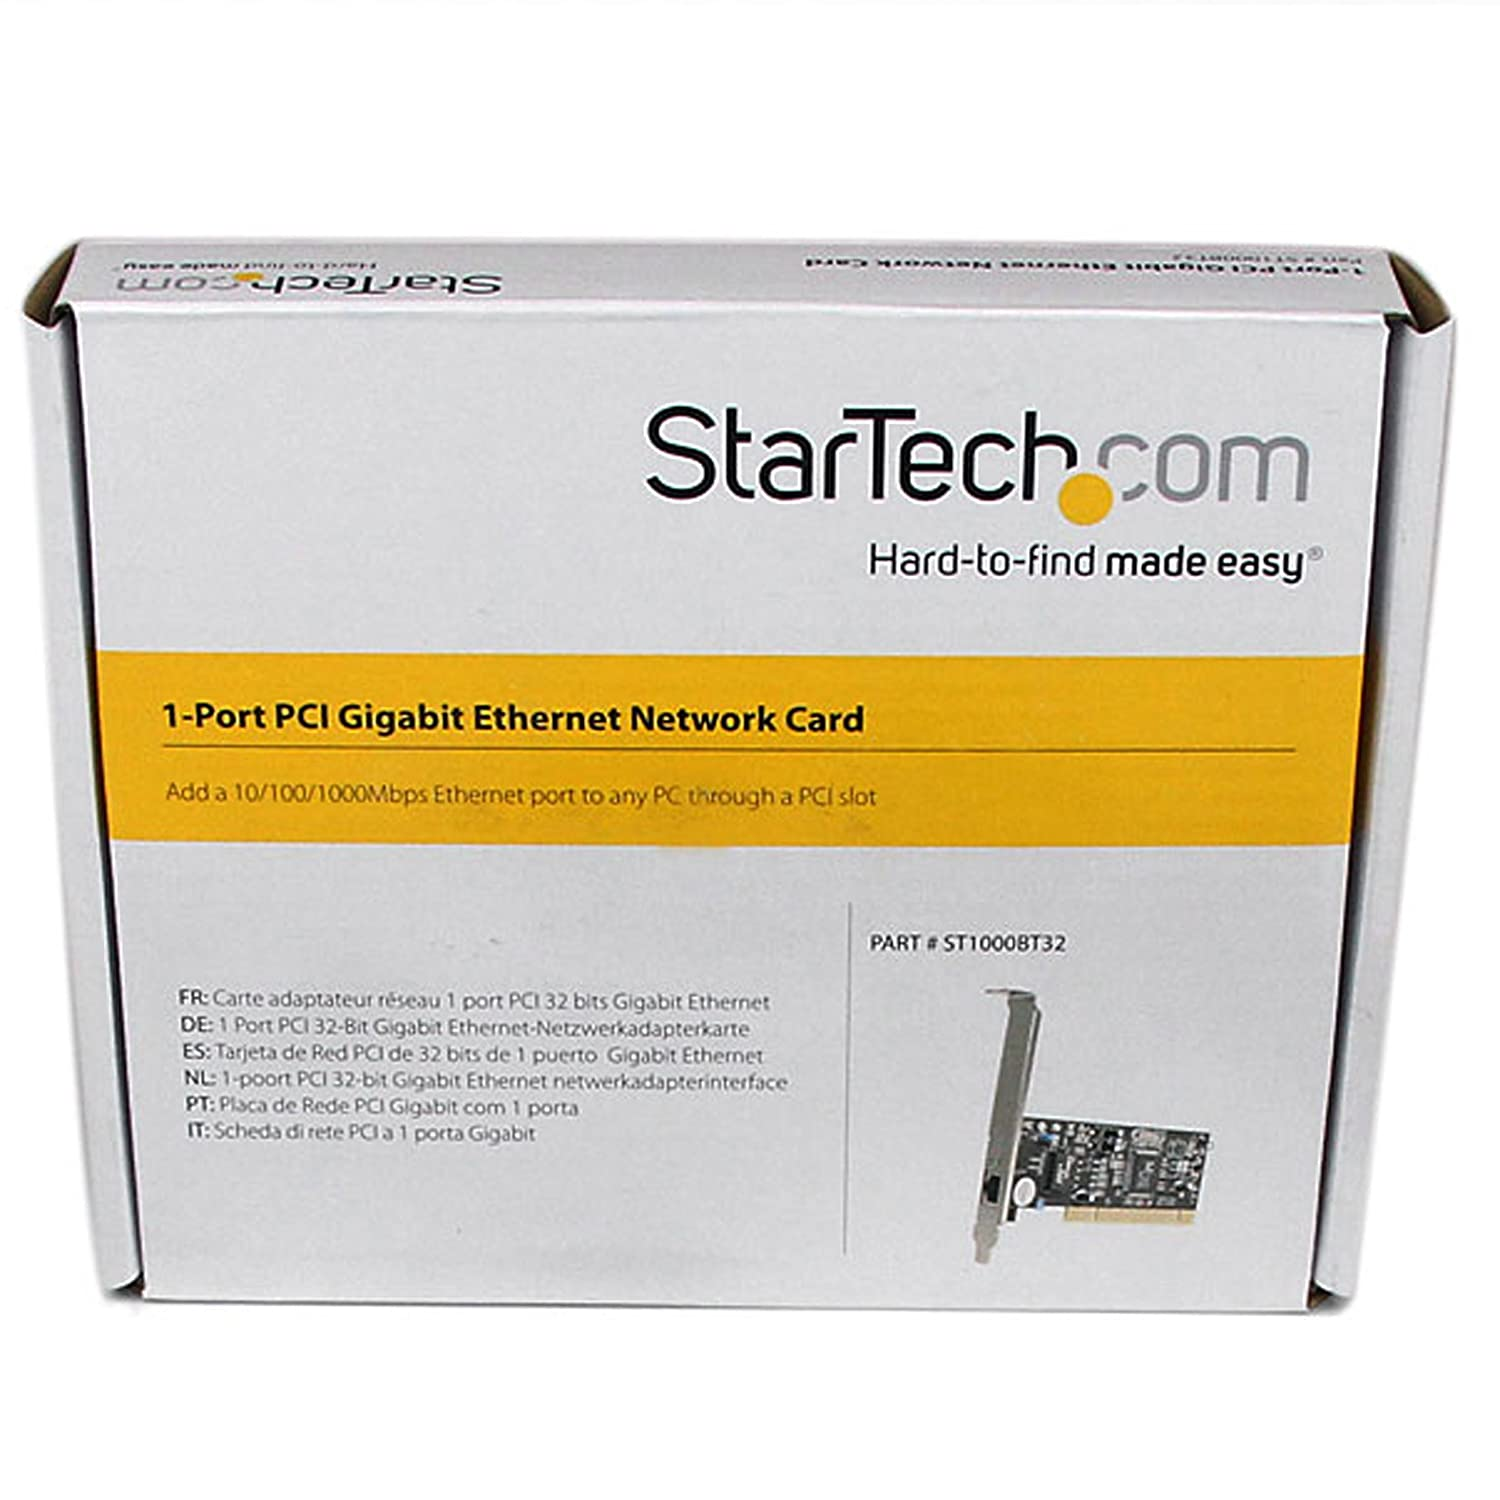 StarTech.com 1 Port PCI 10/100/1000 32 Bit Gigabit Ethernet Network Adapter Card (ST1000BT32)